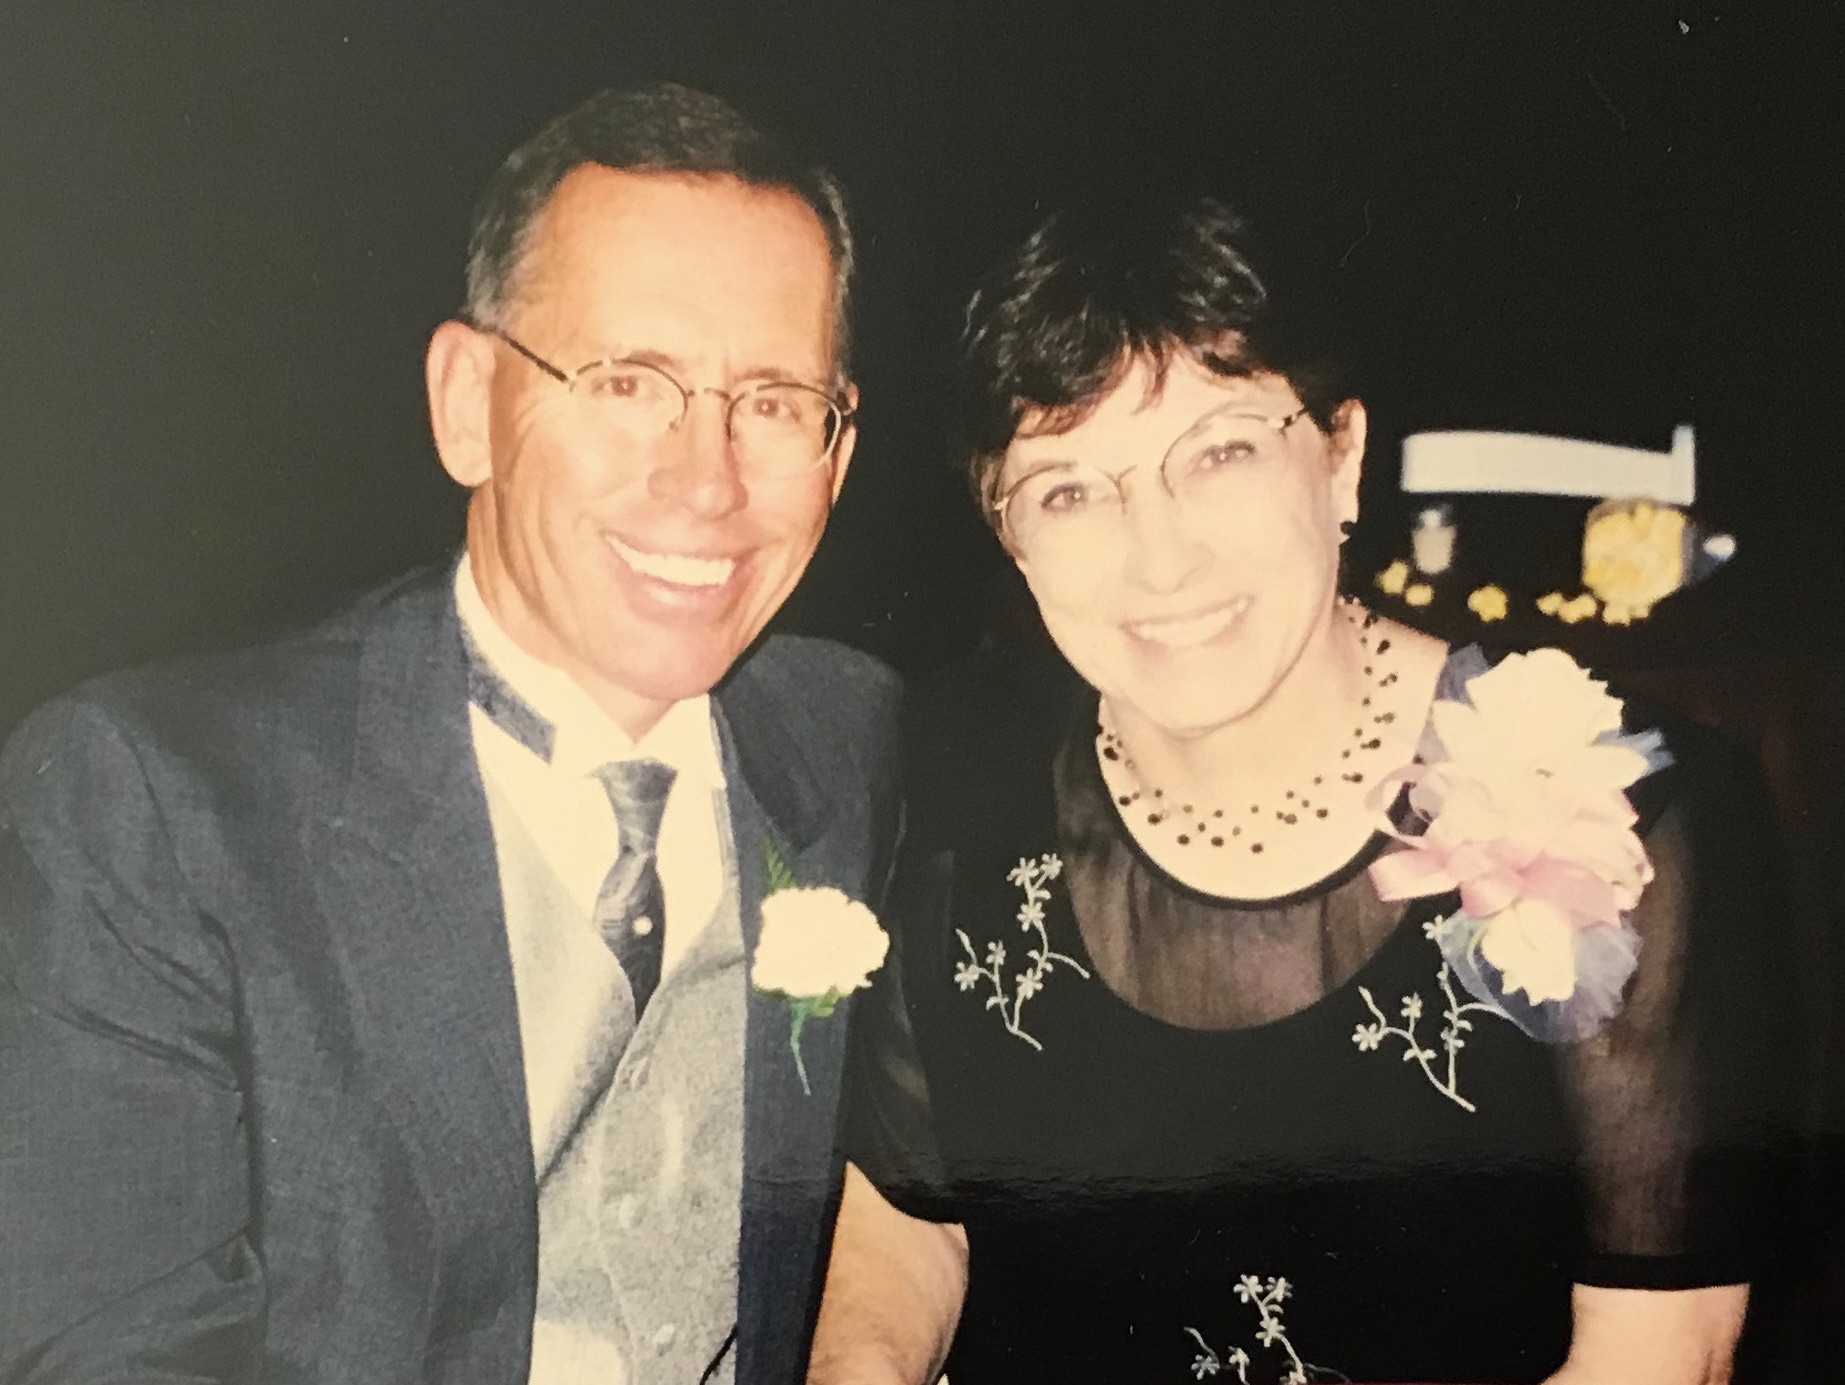 Patti and Wally in 1999 at Ross and Bebhinn's wedding